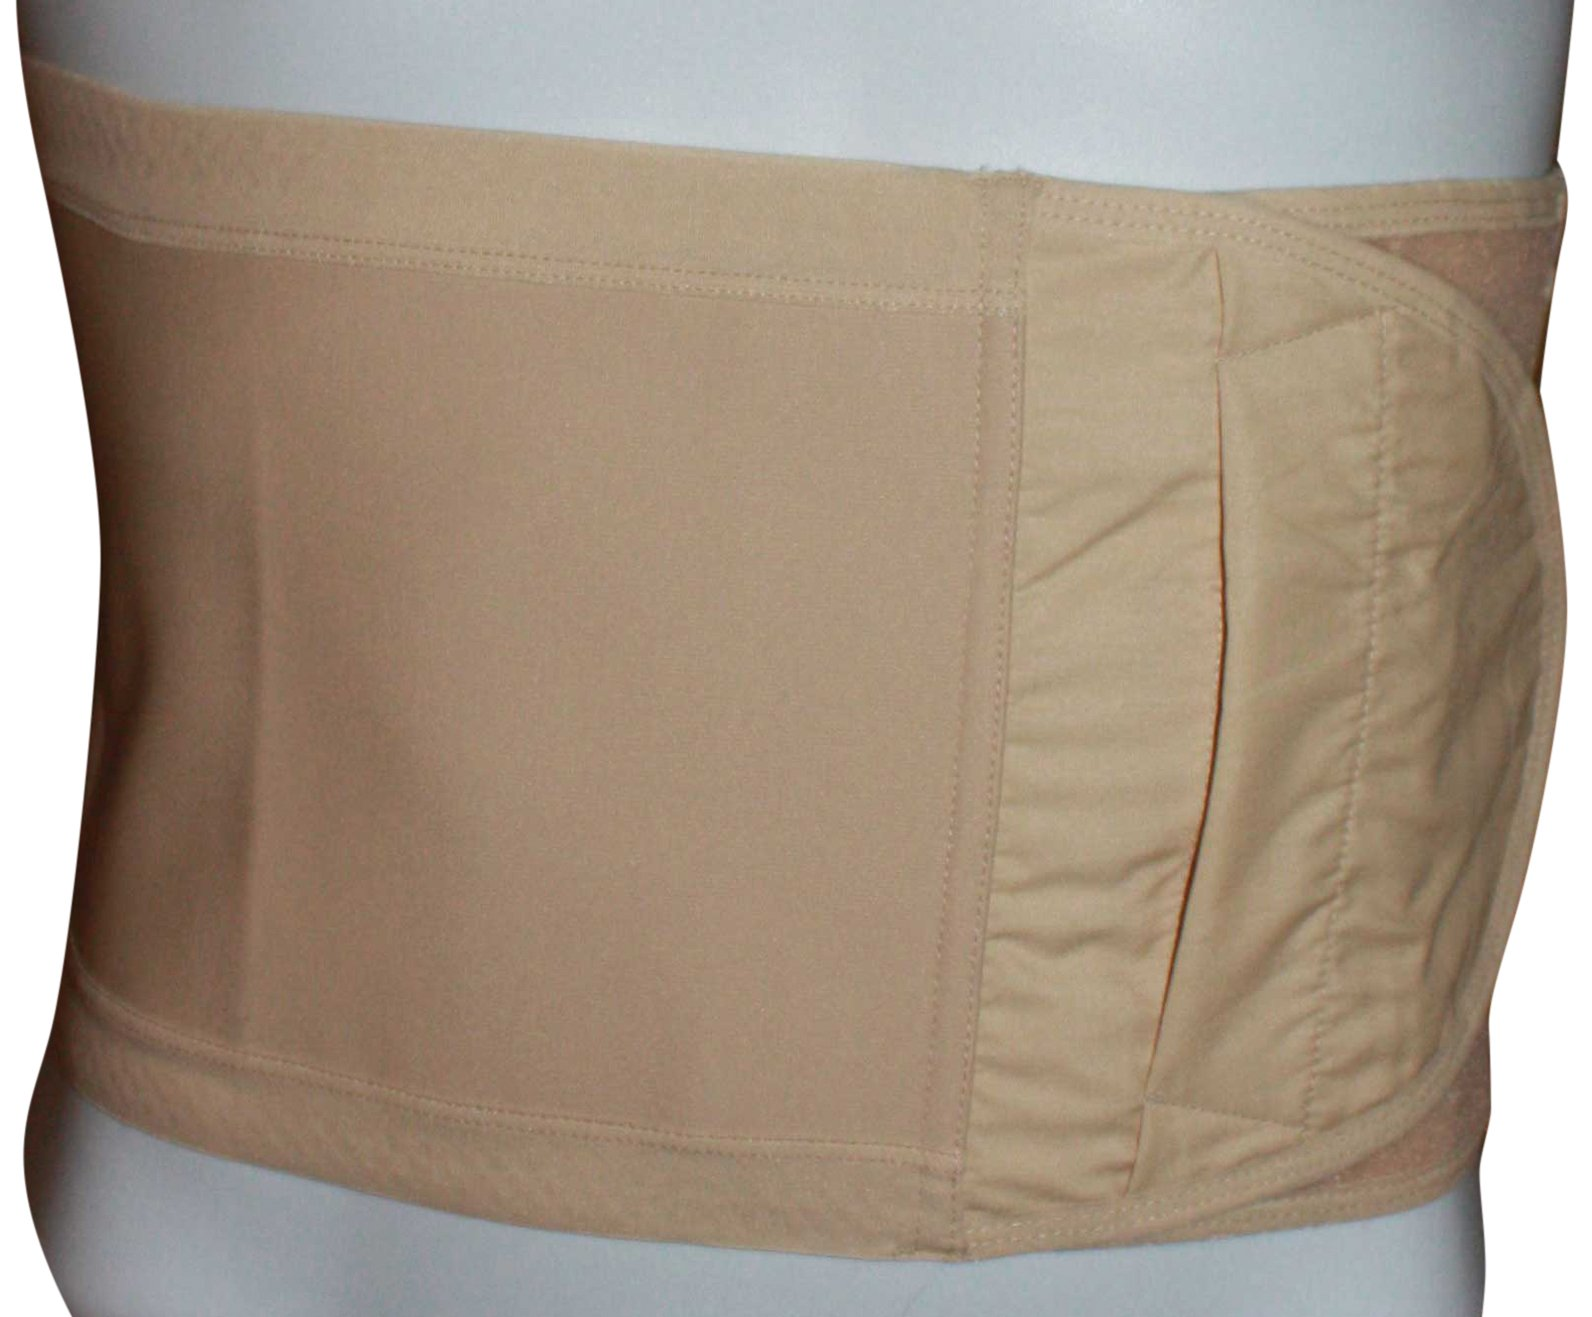 Safe n' Simple Hernia Support Belt, 20cm, Beige, Large